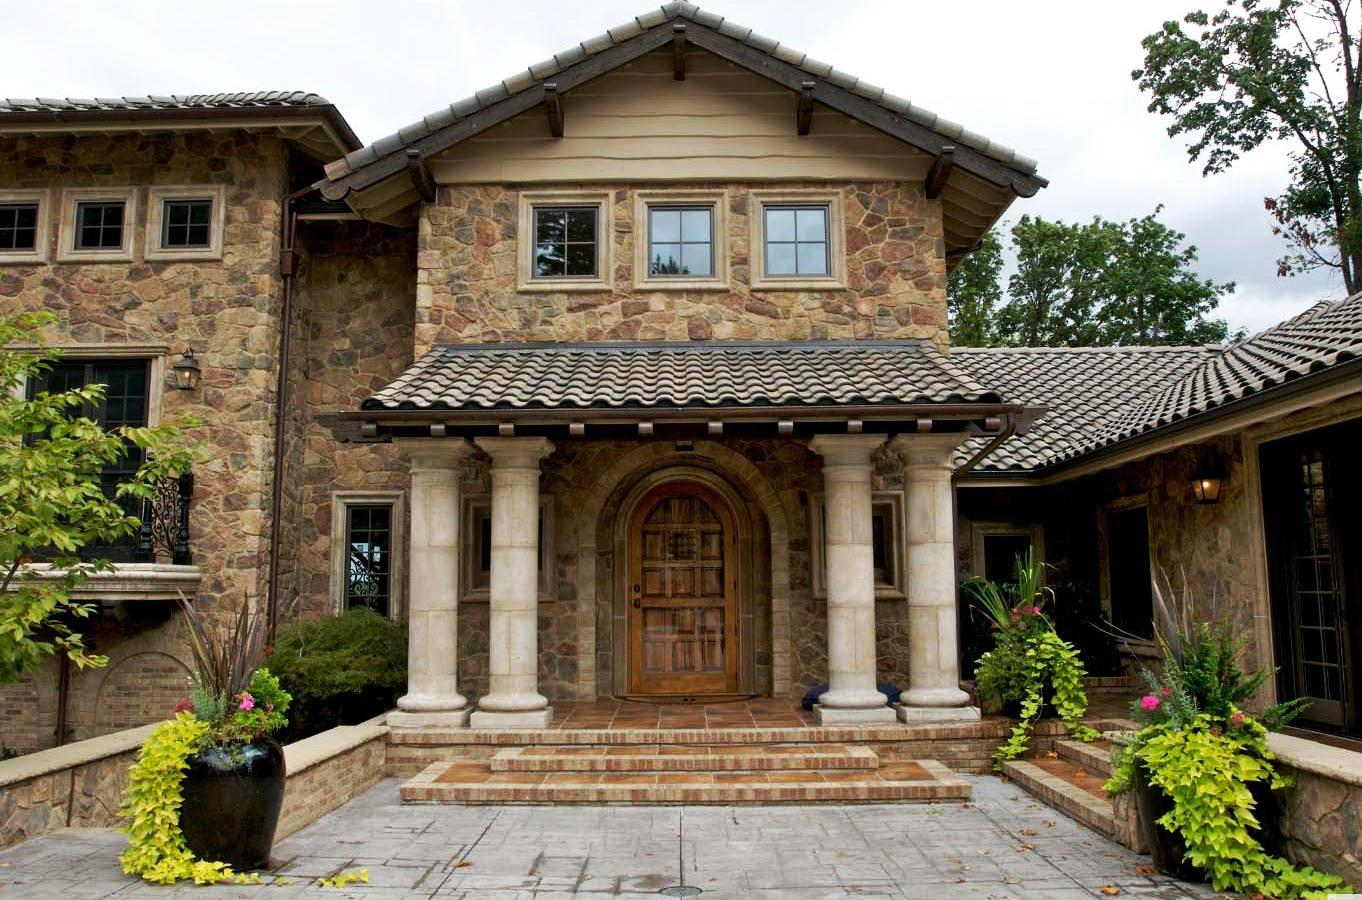 5 Classy Ways To Spice Up Your Curb Appeal